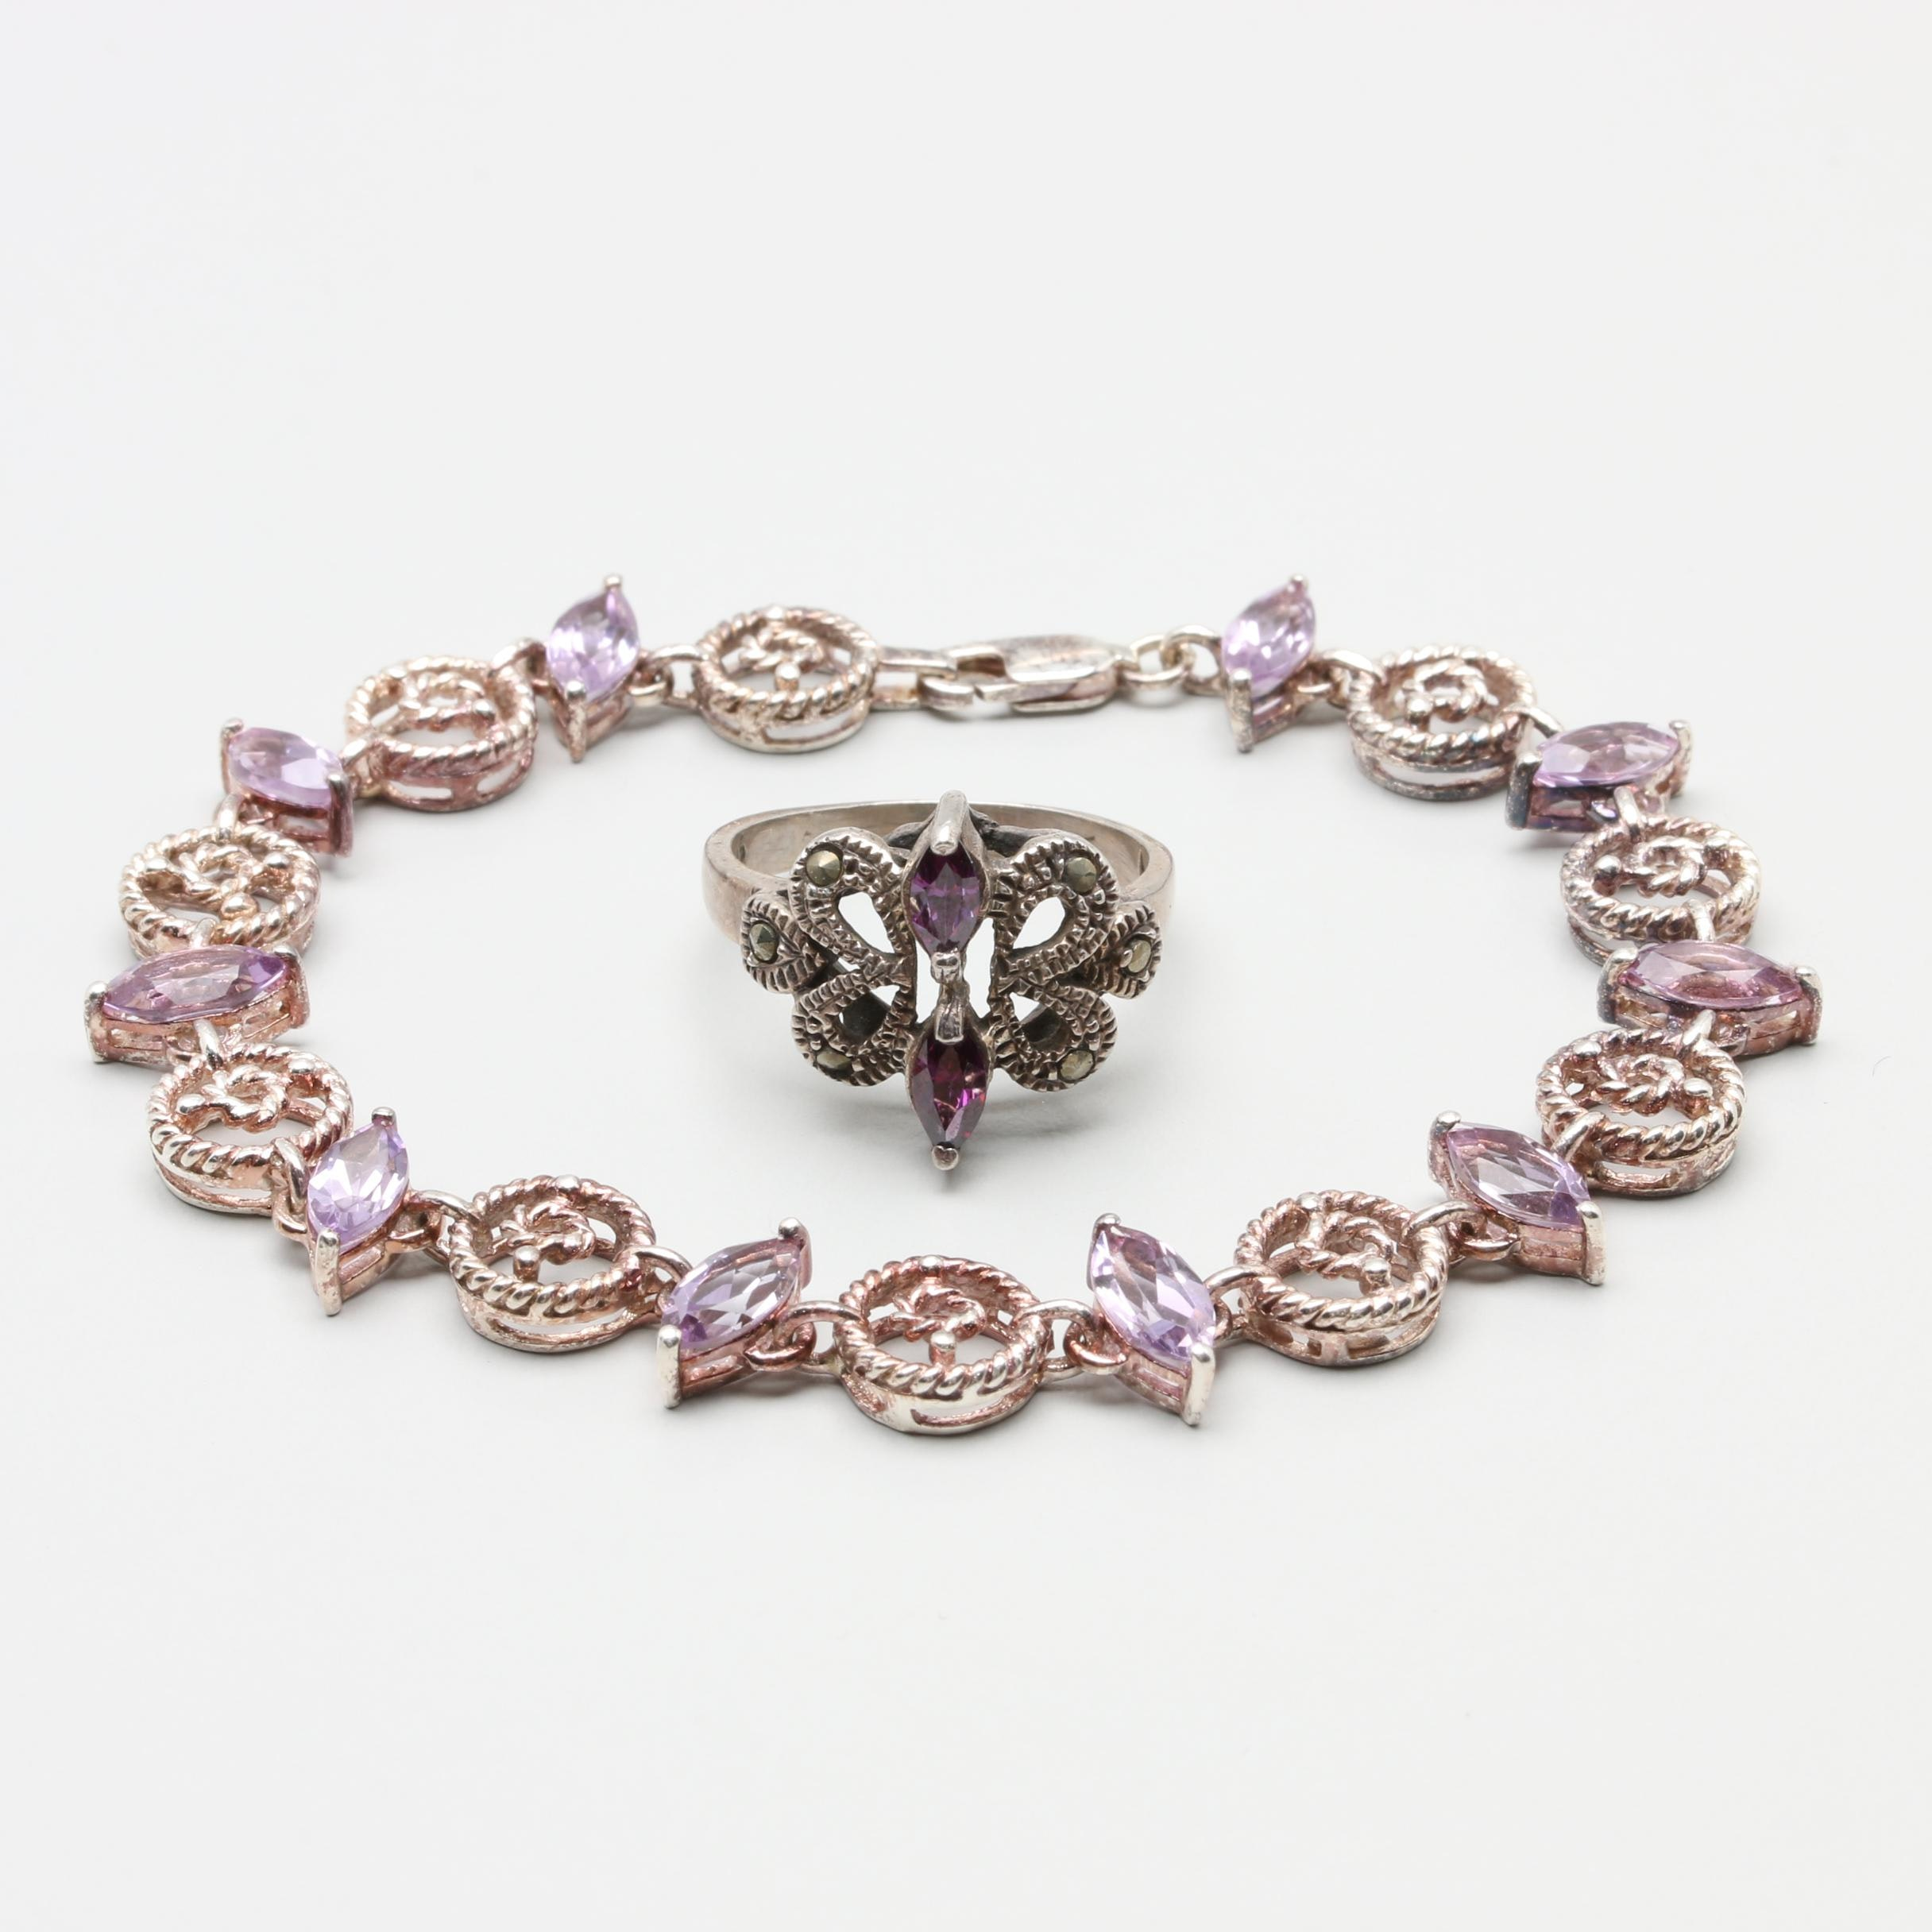 Sterling Silver Bracelet and Ring Selection Featuring Amethyst and Marcasite